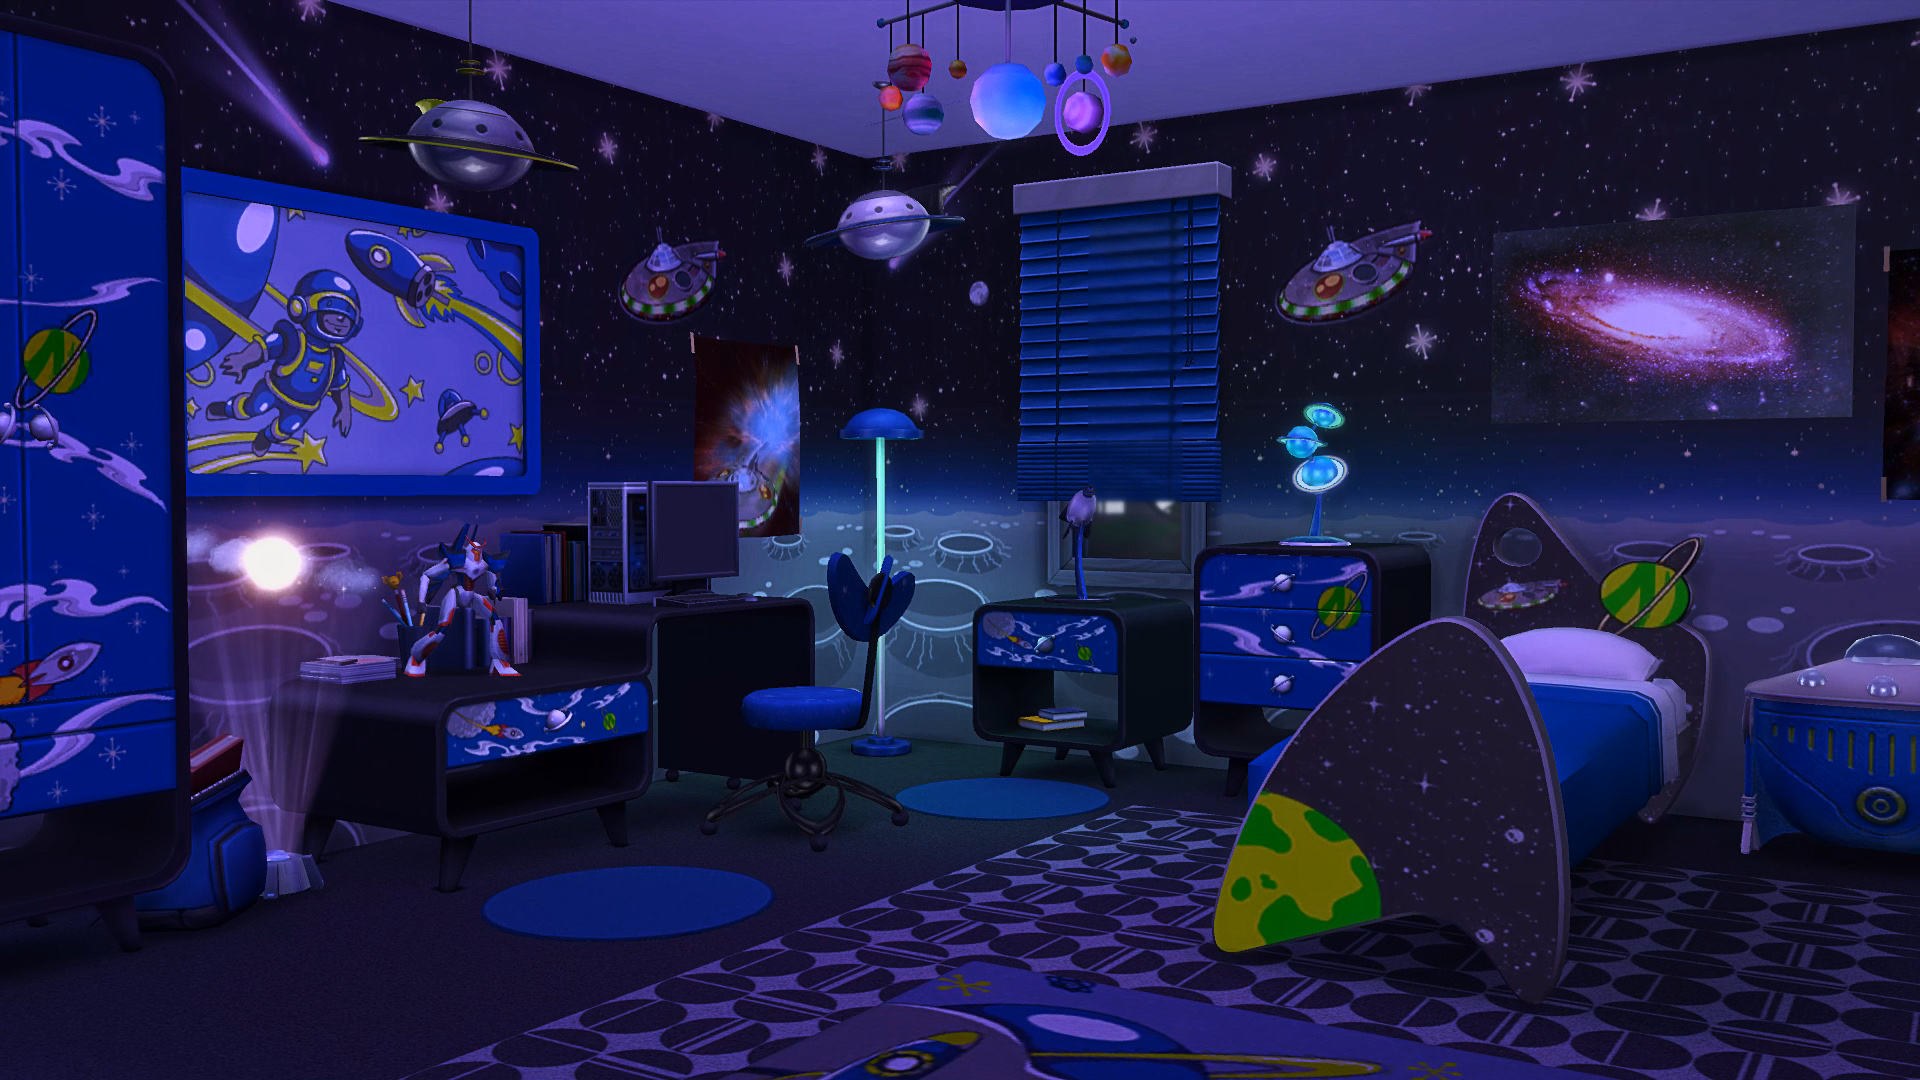 Mod The Sims 10 08 20 Update The Sims 4 Andromeda Bedroom Set